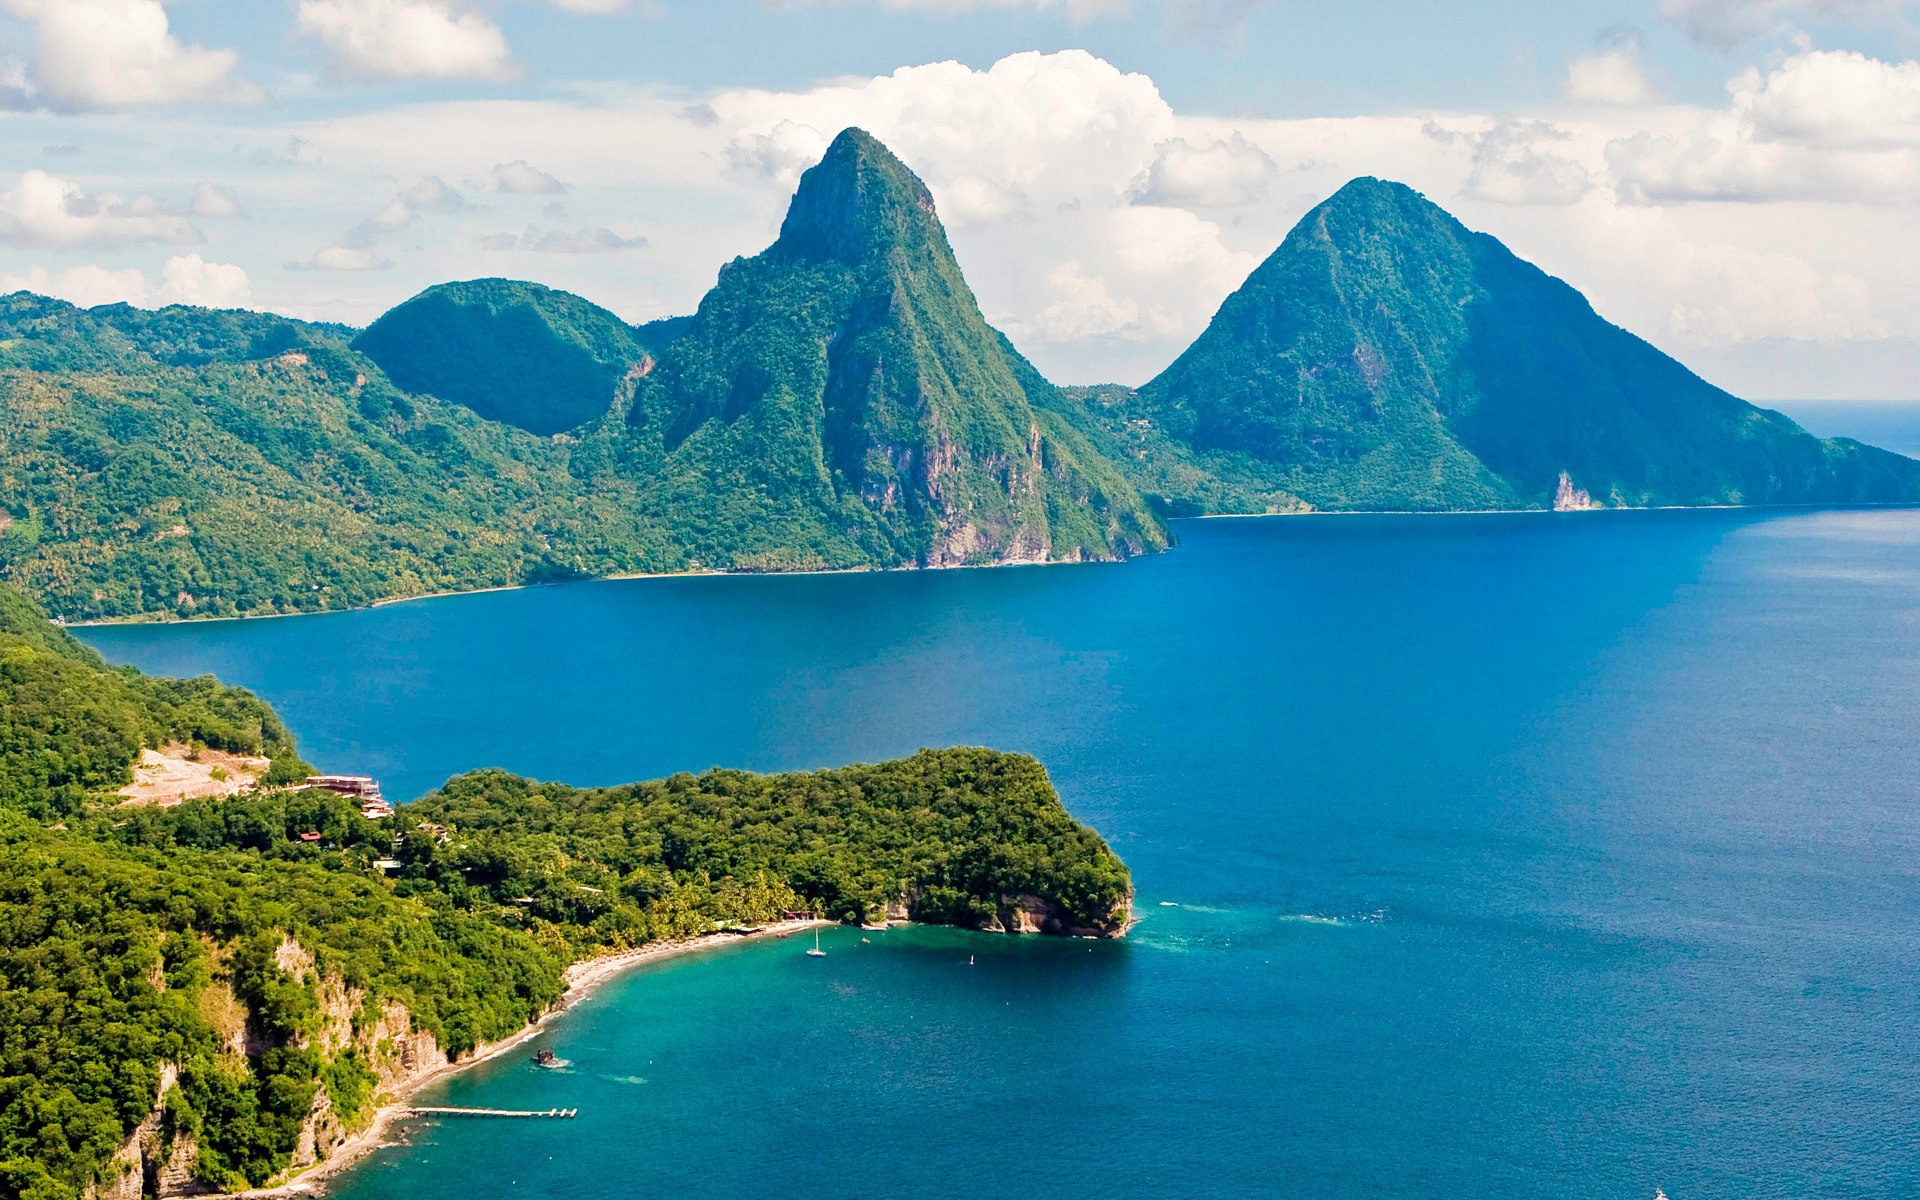 wallpaper-modern-stlucia-about-56393